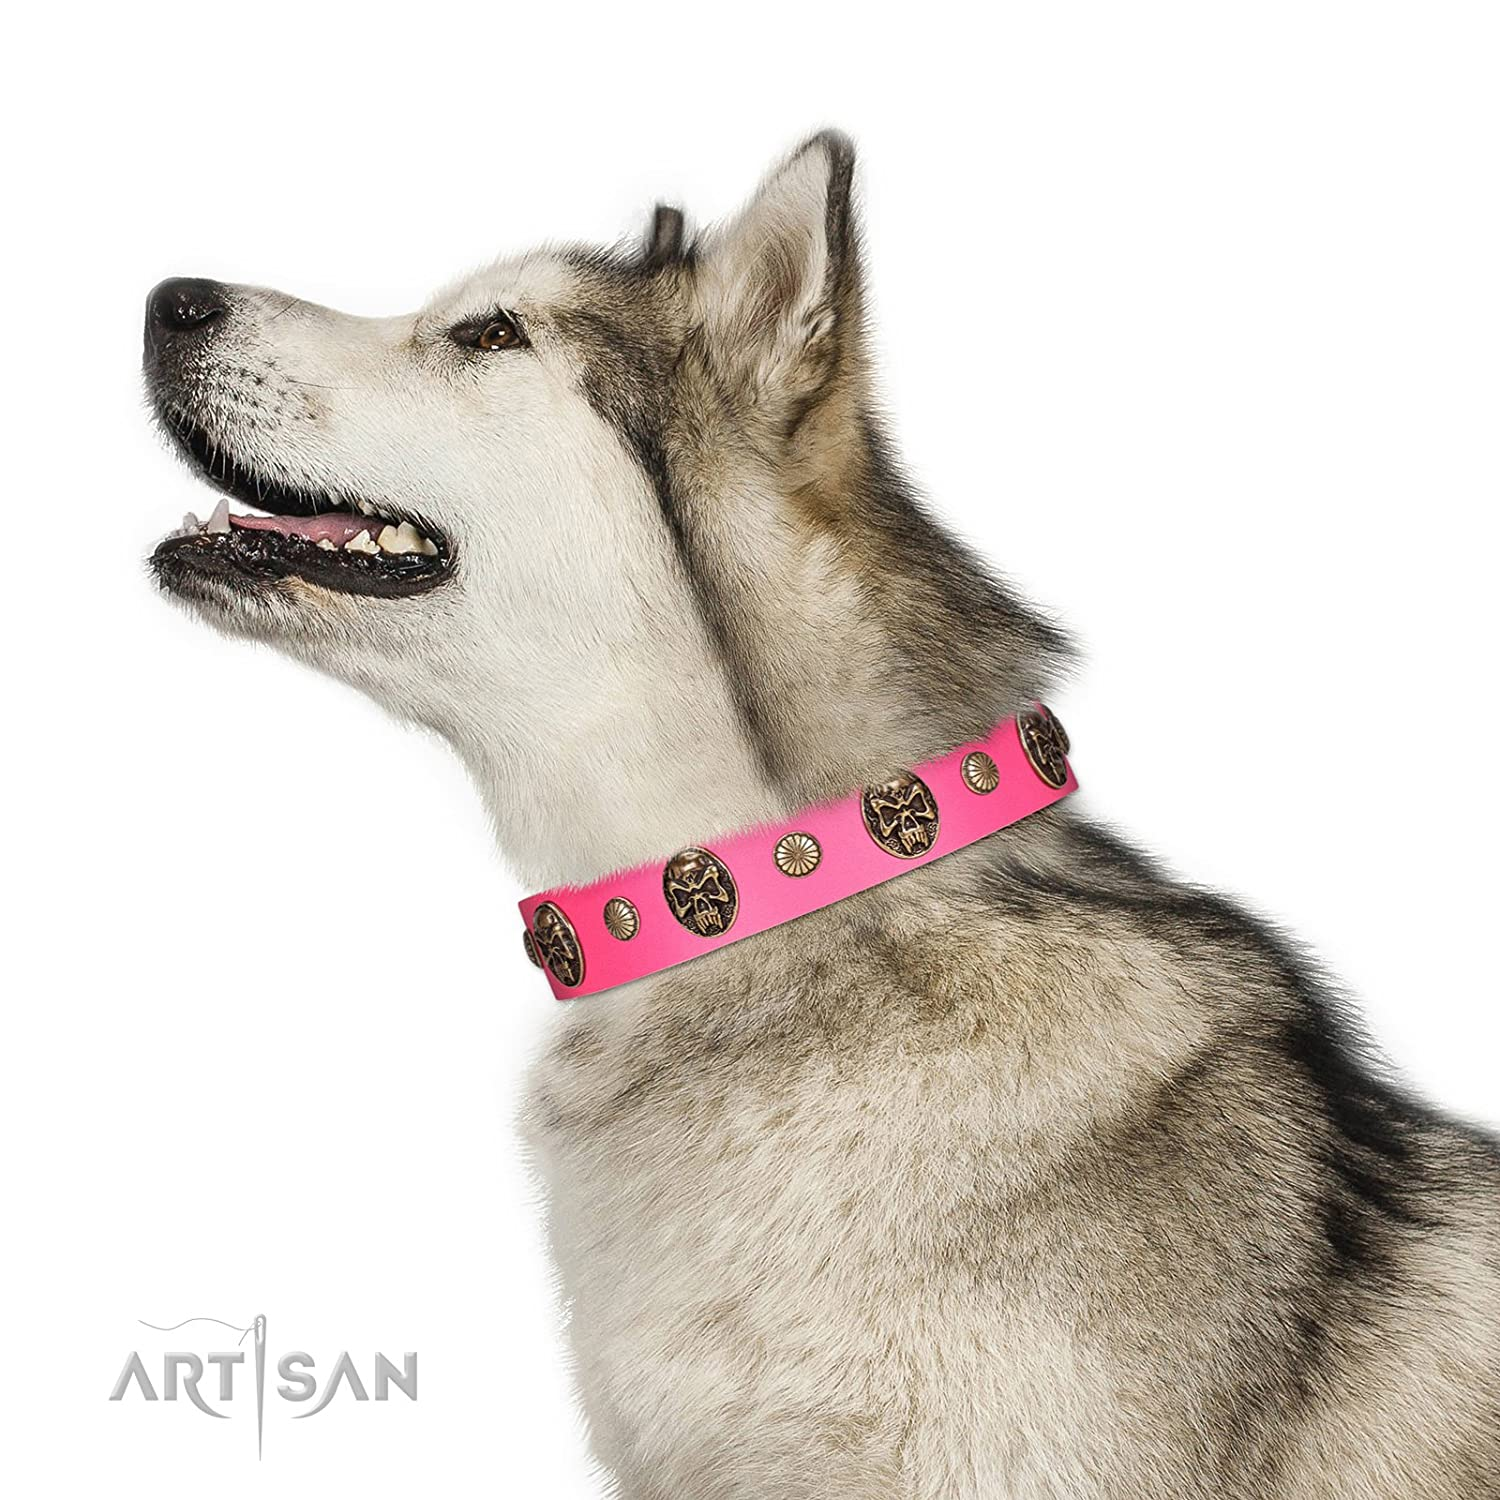 Fits for 17 inch (43cm) dog's neck size 17 inch FDT Artisan Pink Leather Dog Collar Adorned with Conchos and Medallions Ms Pinky Fluff 1 1 2 inch (40 cm) Wide Gift Box Included